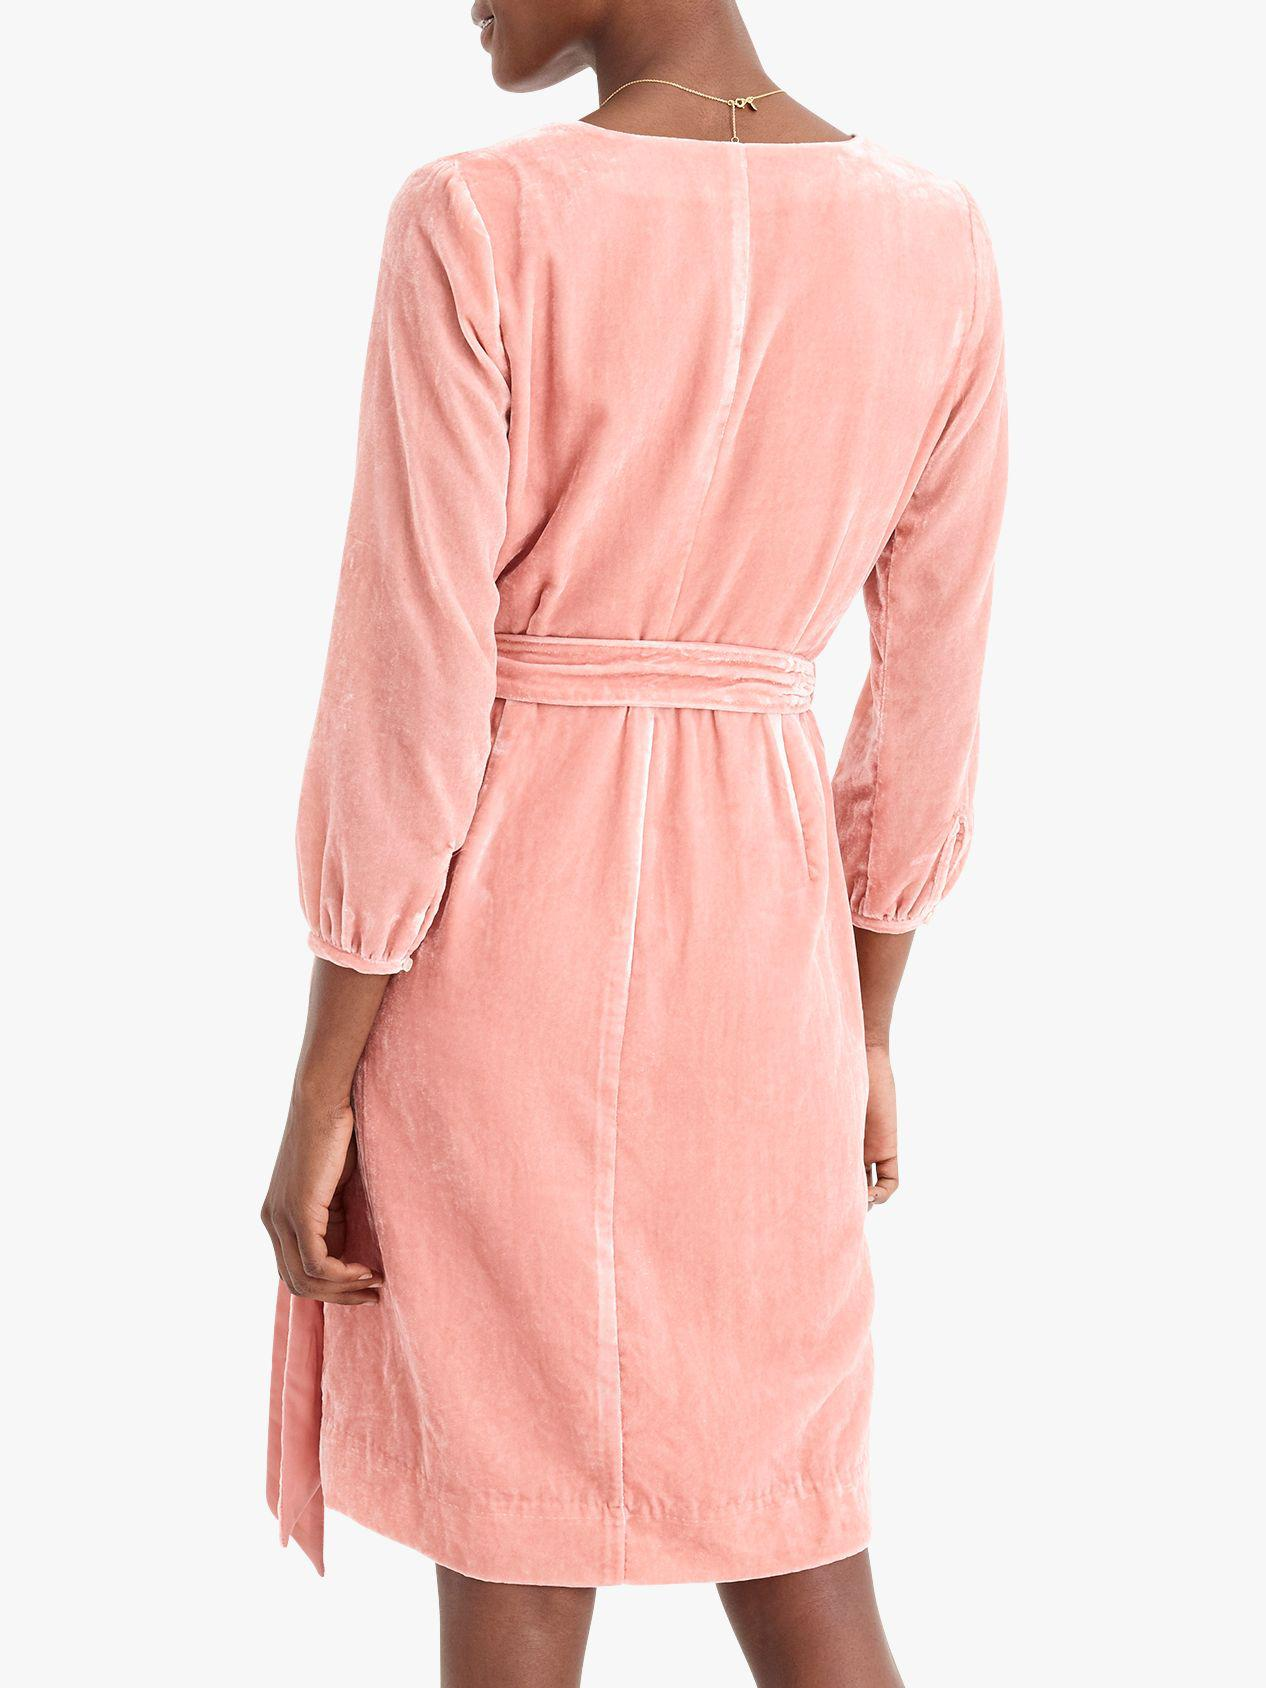 8ed43c79cde0d J.Crew Wrap Dress In Drapey Velvet in Pink - Save 32% - Lyst